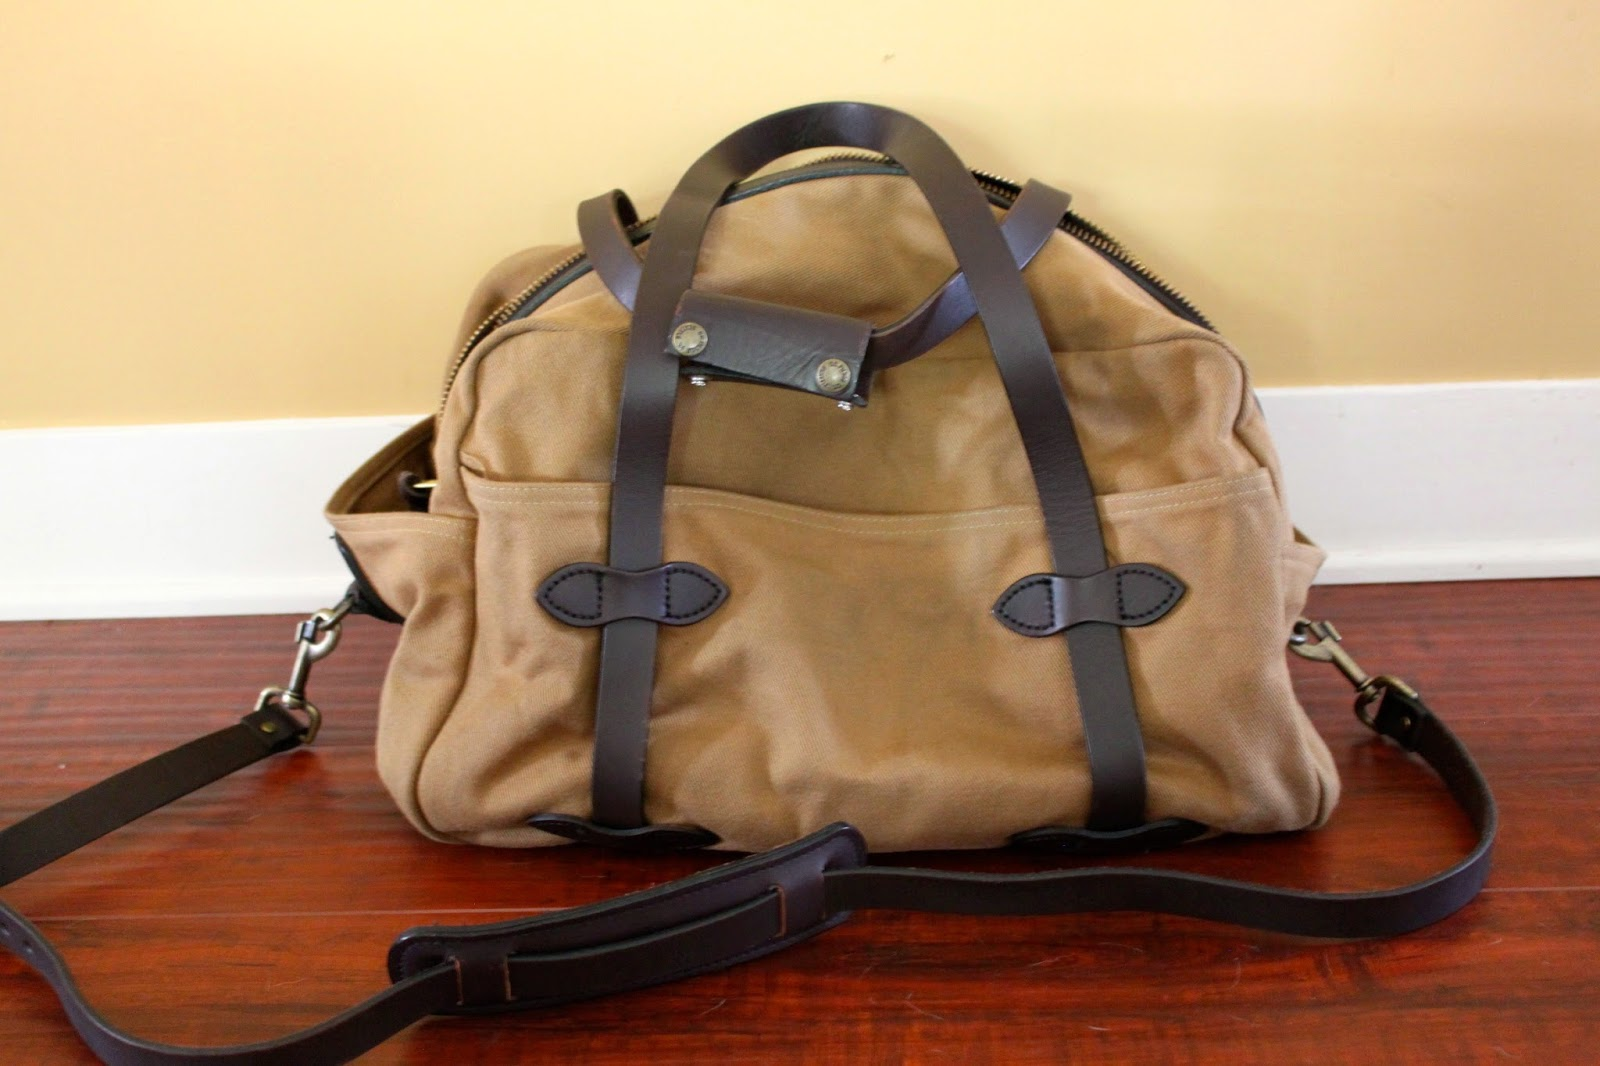 Almost New Filson Medium Travel Bag In Tan Canvas With Brown Leather Accents Used A Handful Of Times Shows No Wear Except For Little Light Dirt On The